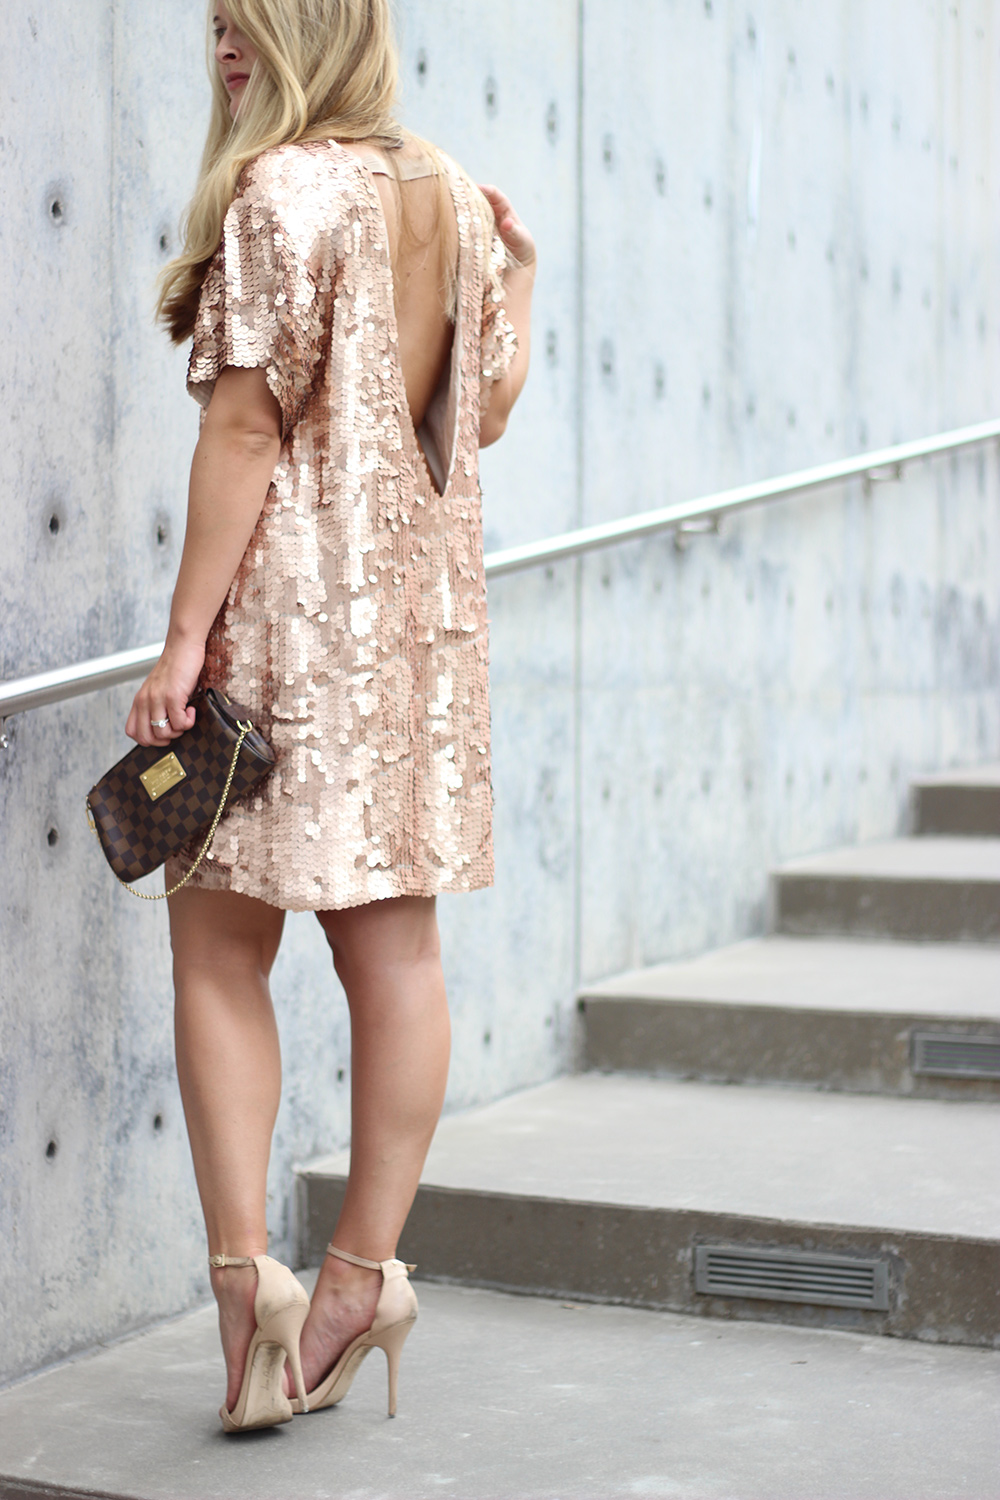 a528fc4157d2e ... Dallas fashion blogger cameron proffitt wears gold sequin free people  dress and tells readers what to